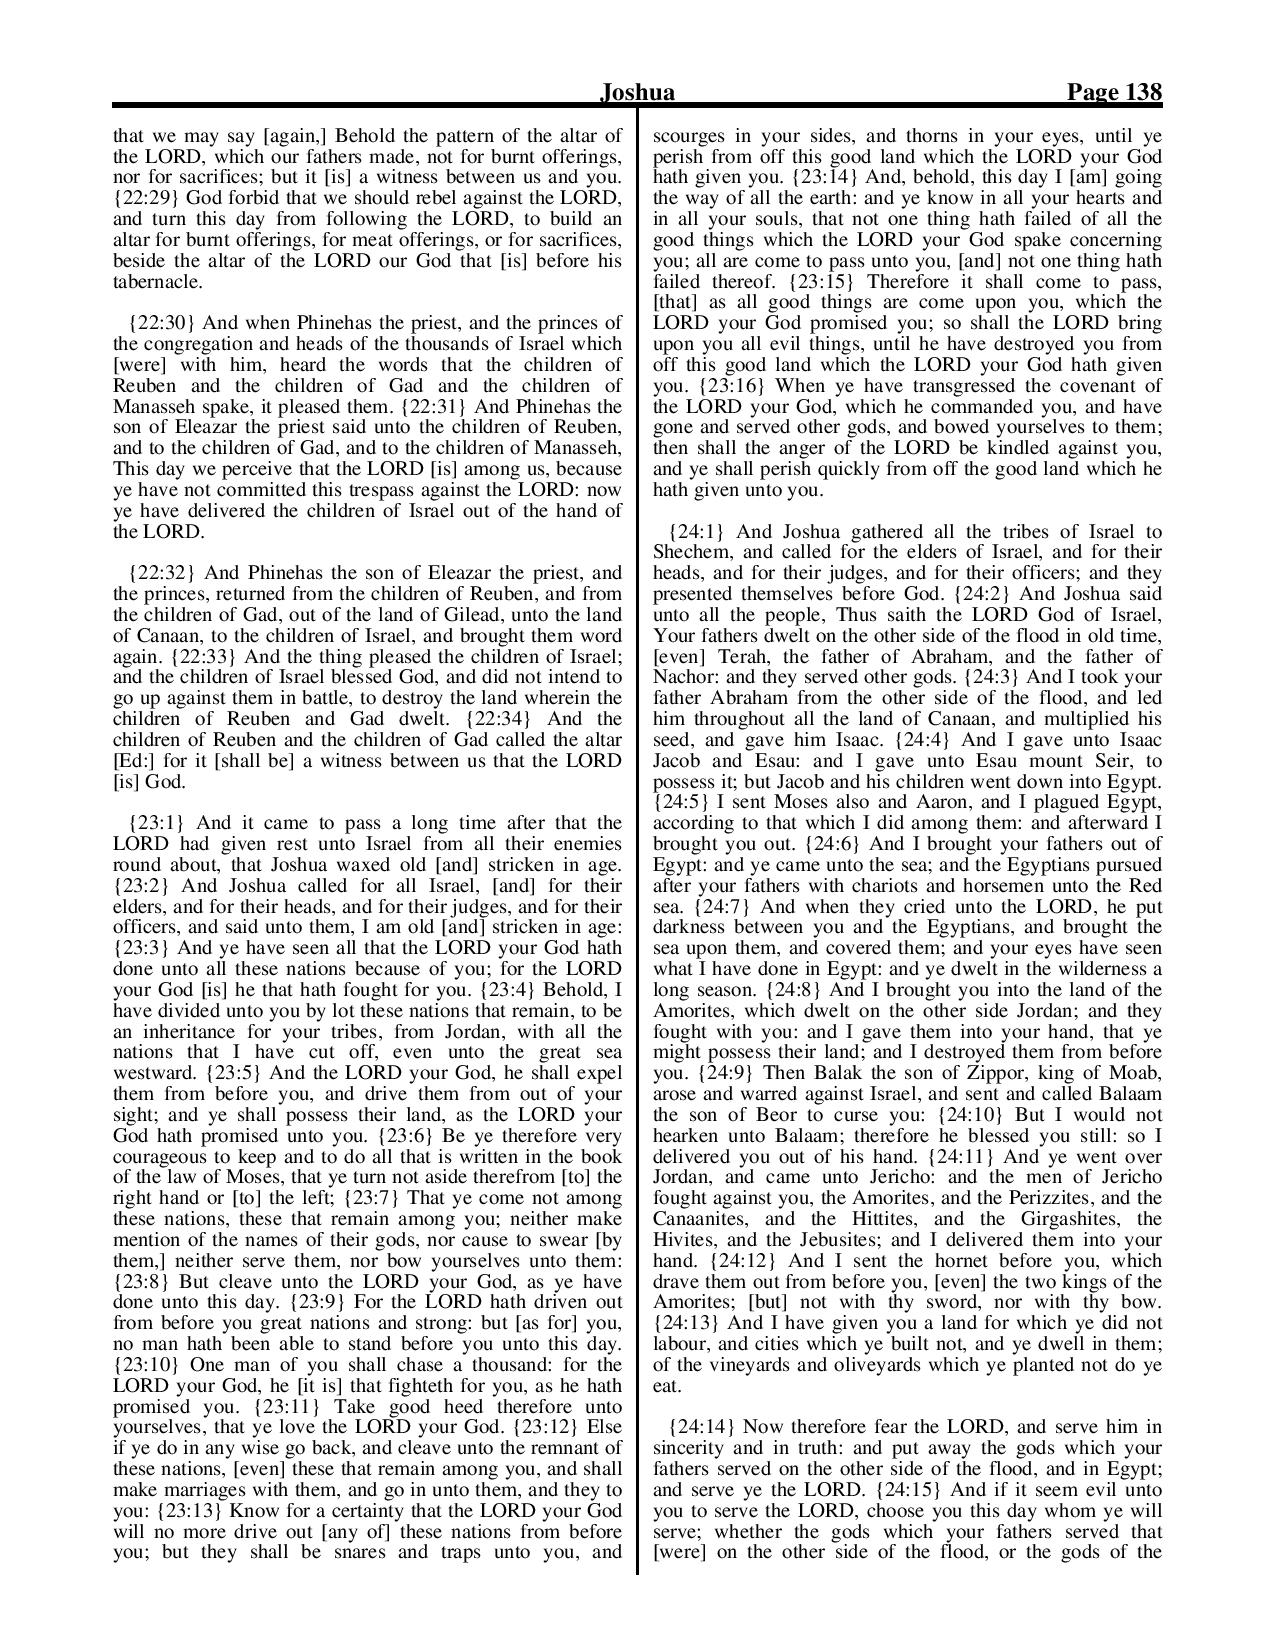 King-James-Bible-KJV-Bible-PDF-page-159